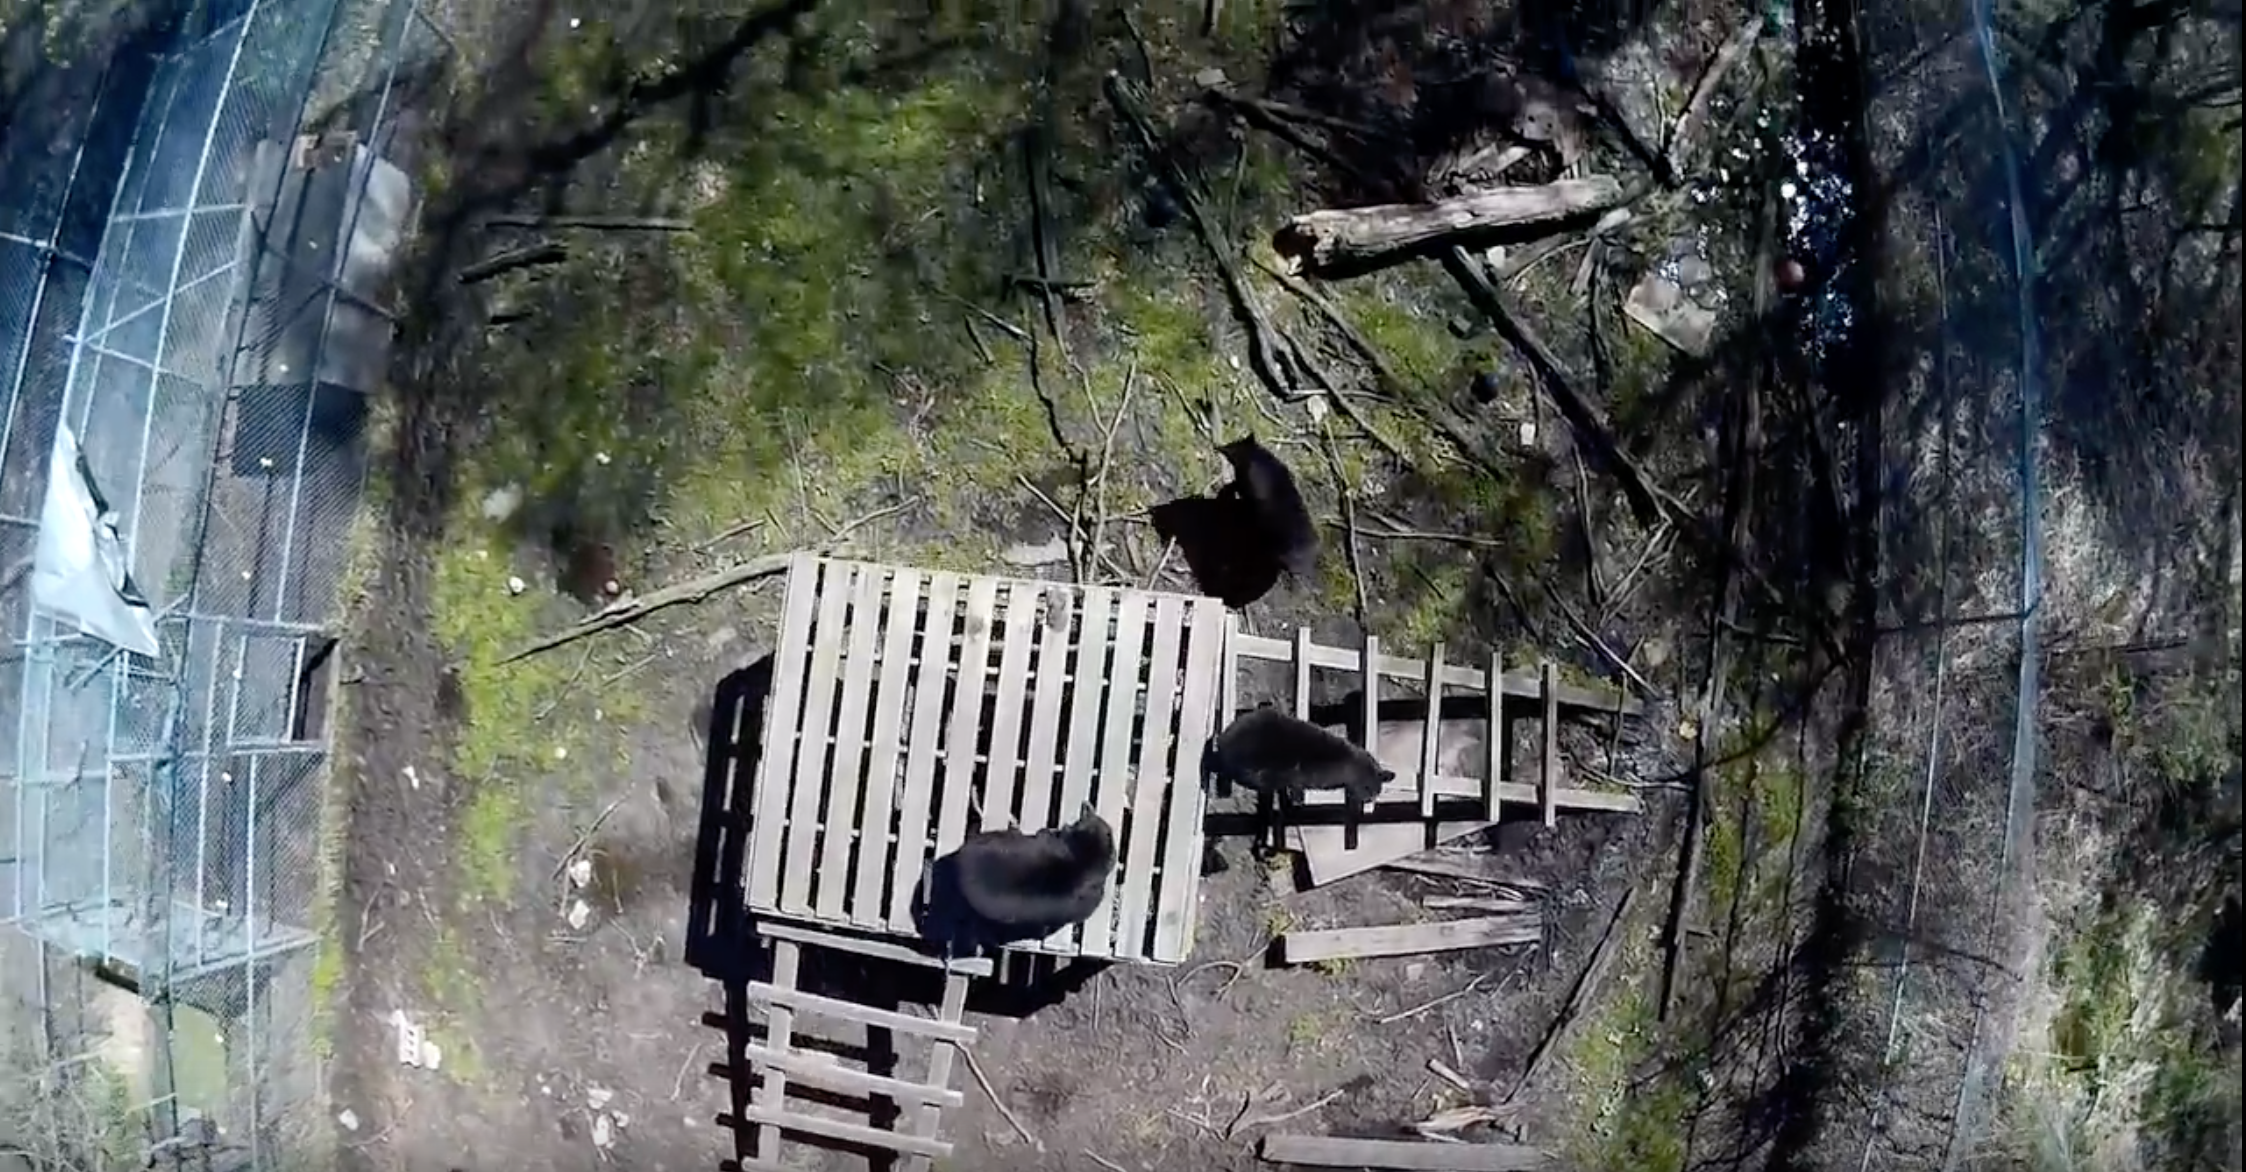 Drone's view of bears in enclosure